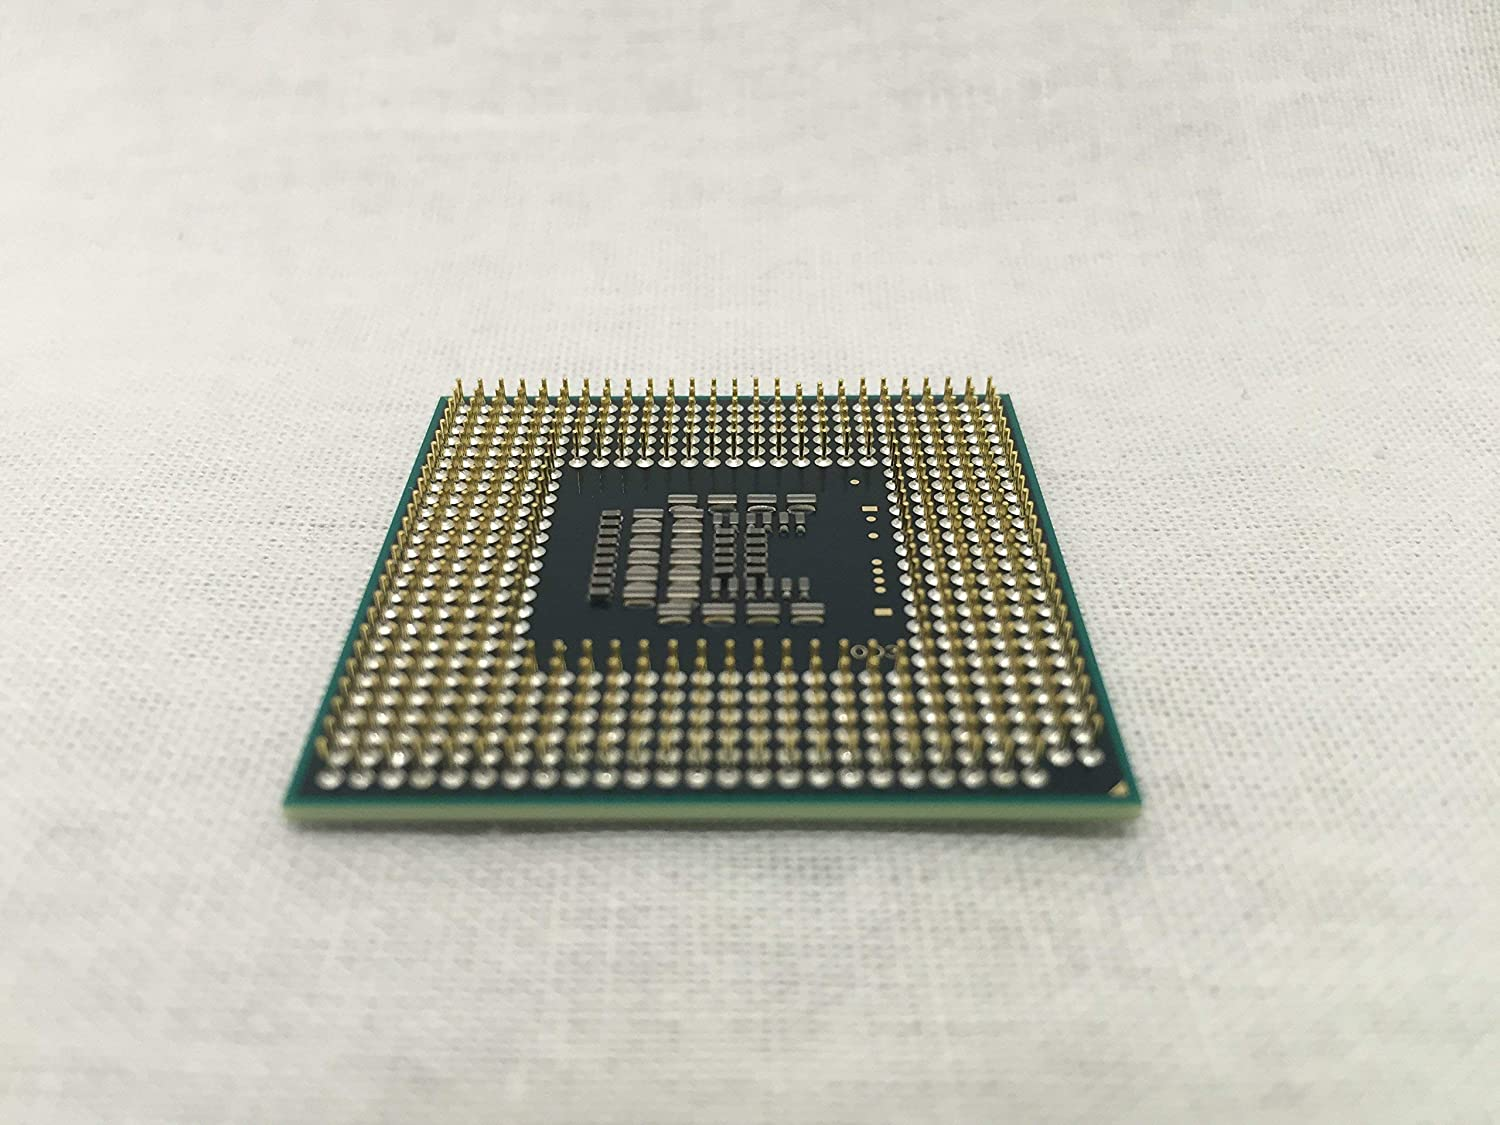 SLAYQ INTEL CORE DUO T8300 2.4GHZ CPU LAPTOP SOCKET P with thermal paste